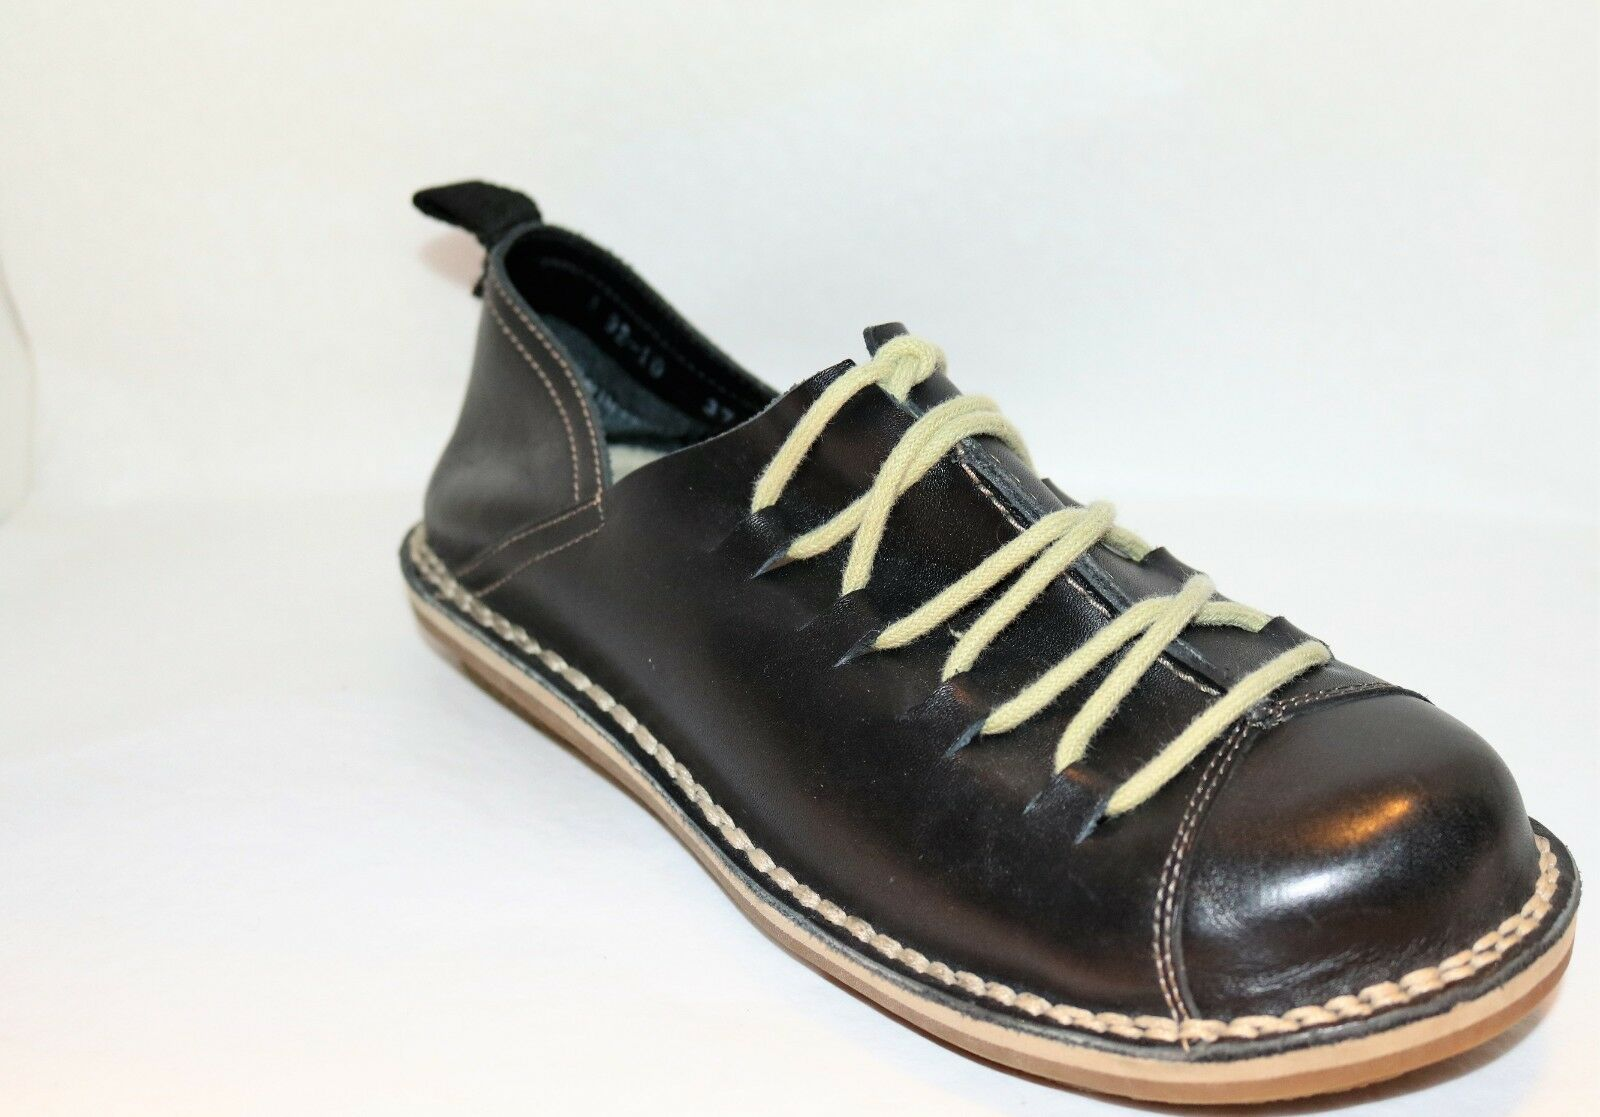 BARCODE CAMP FIRE Brand Black Leather Lace Up shoes Size 37 LIKE NEW